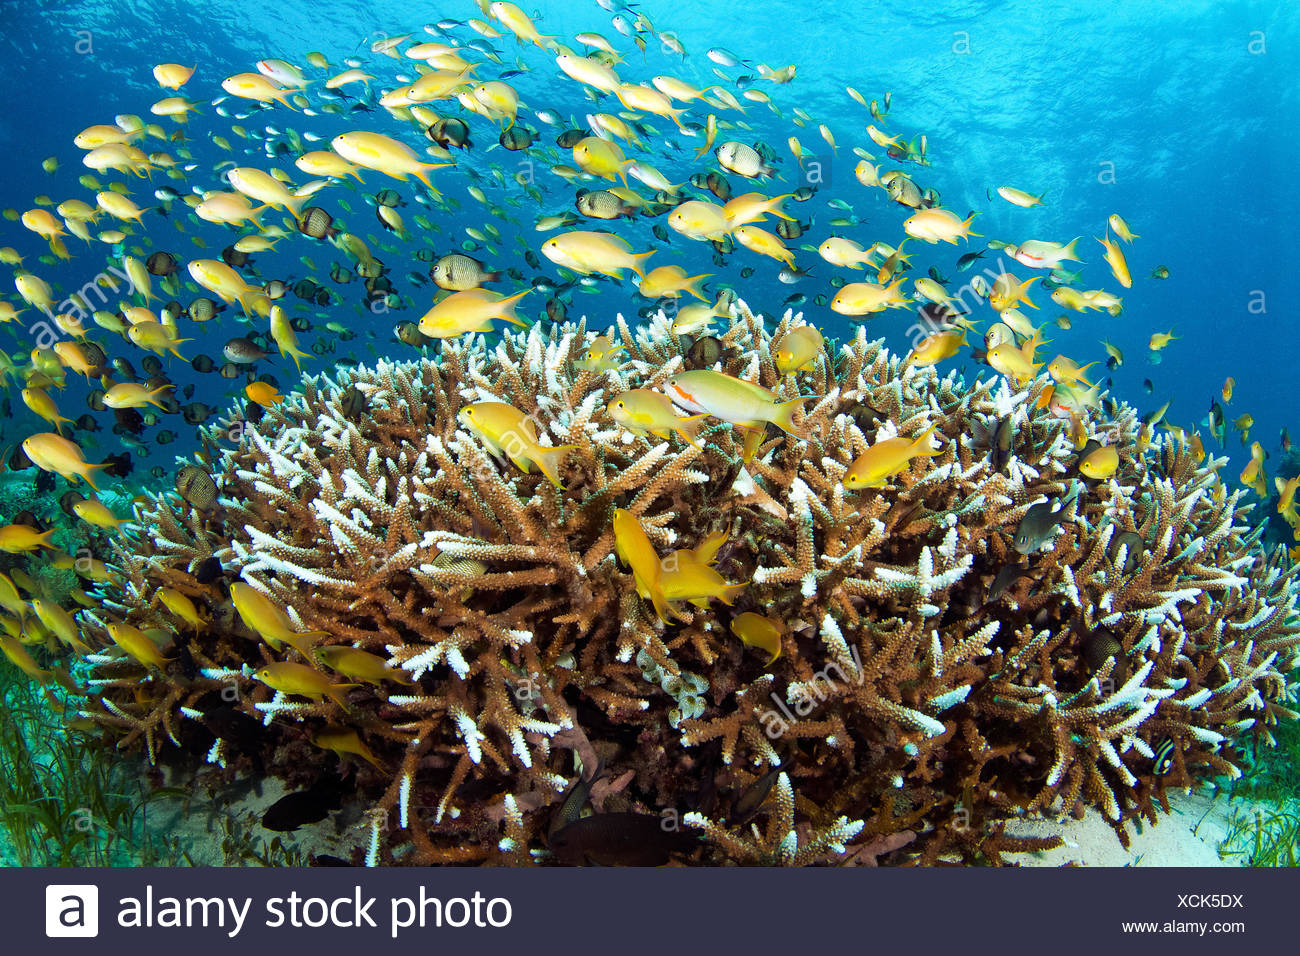 Anthias, Anthiinae, schooling over Staghorn coral, Acropora cervicornis, on a shallow seagrass bed. - Stock Image